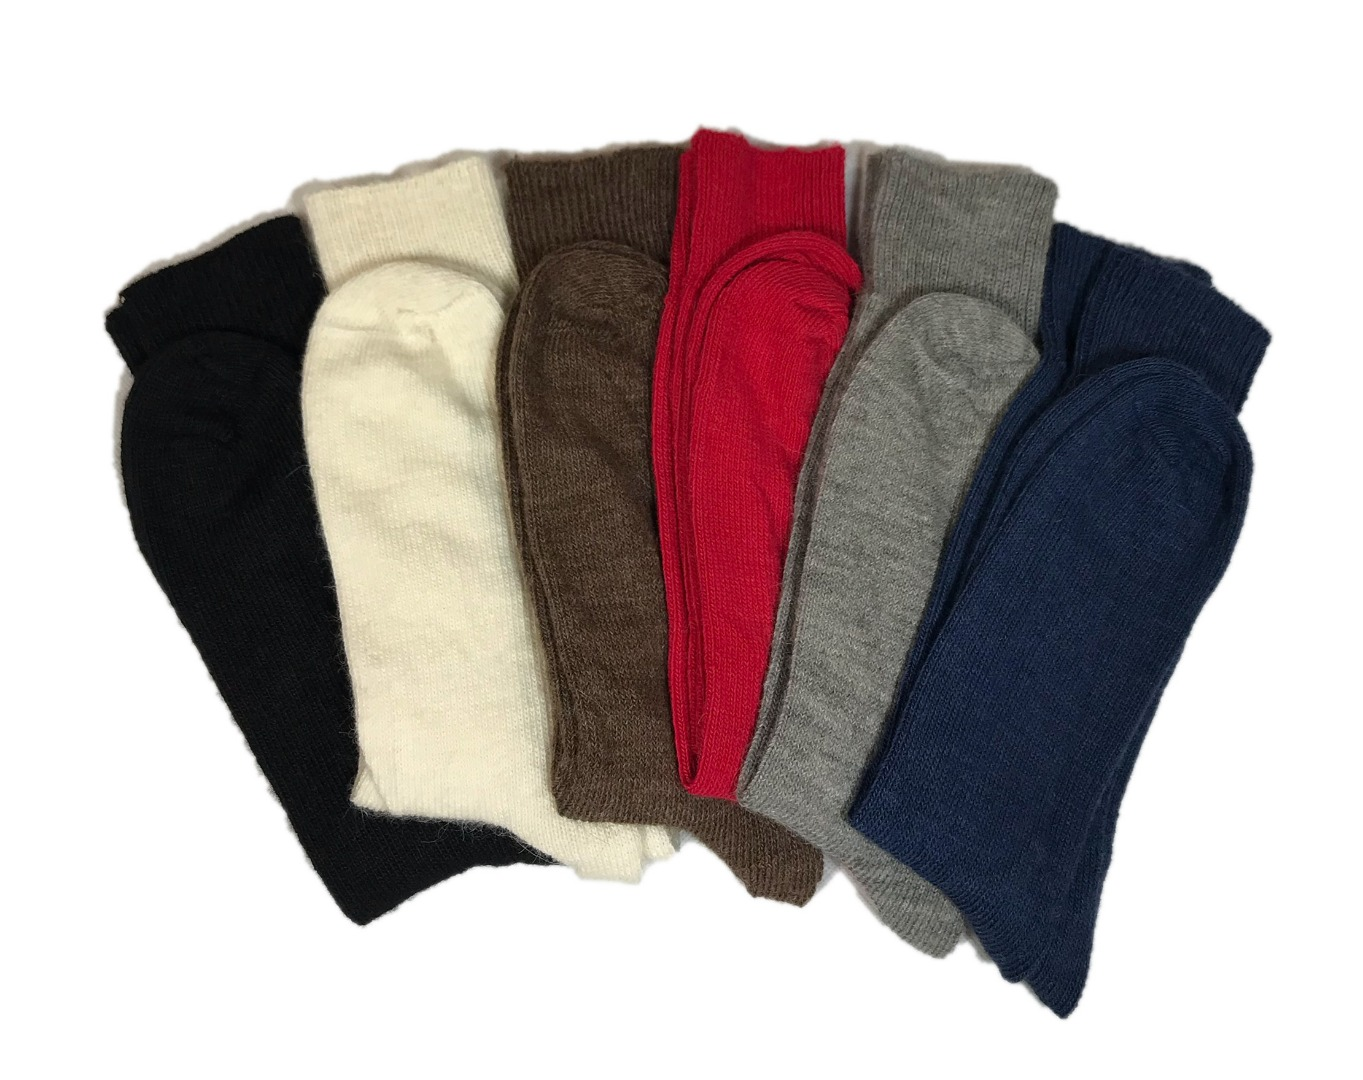 6 pairs of Alpaca Every Day Socks, 55% Alpaca Wool.  Alpaca Sock <br><br>Gift Idea K